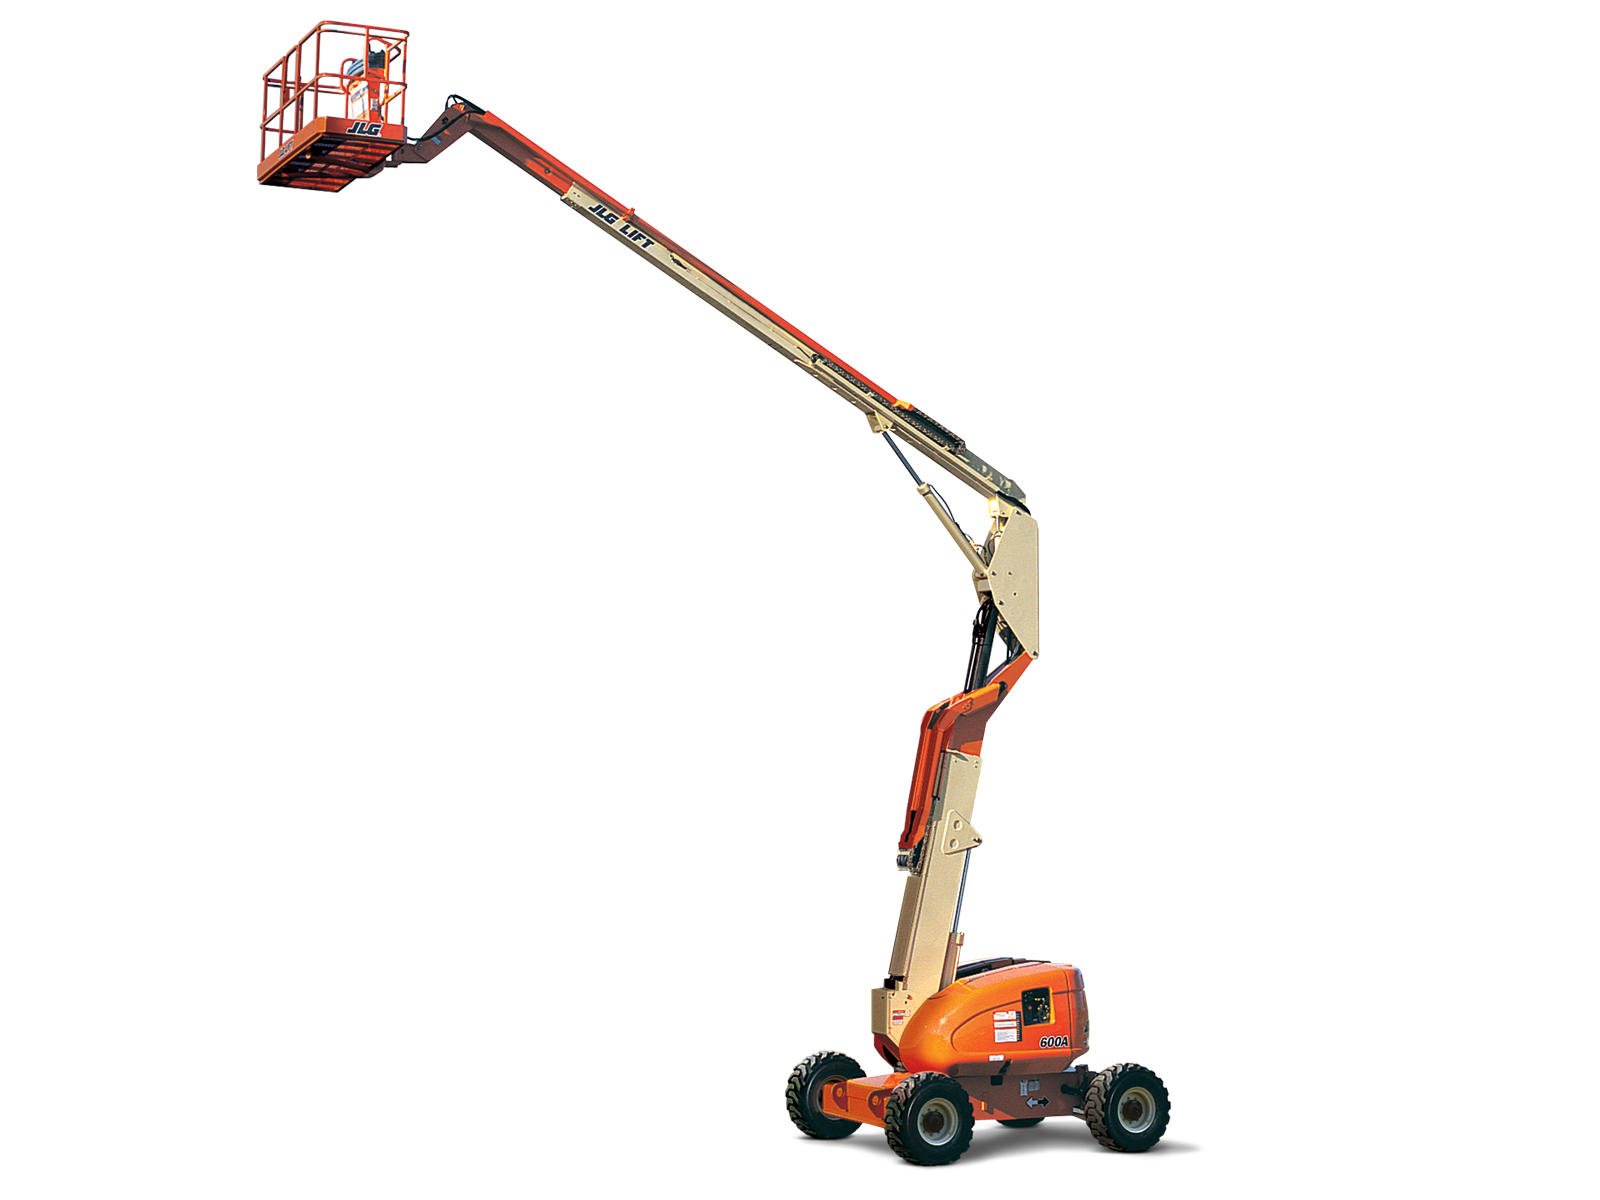 600a gallery silo?mw=320?w=100 diagrams 603390 jlg scissor lift wiring diagram boom lift jlg 40h wiring diagram at crackthecode.co